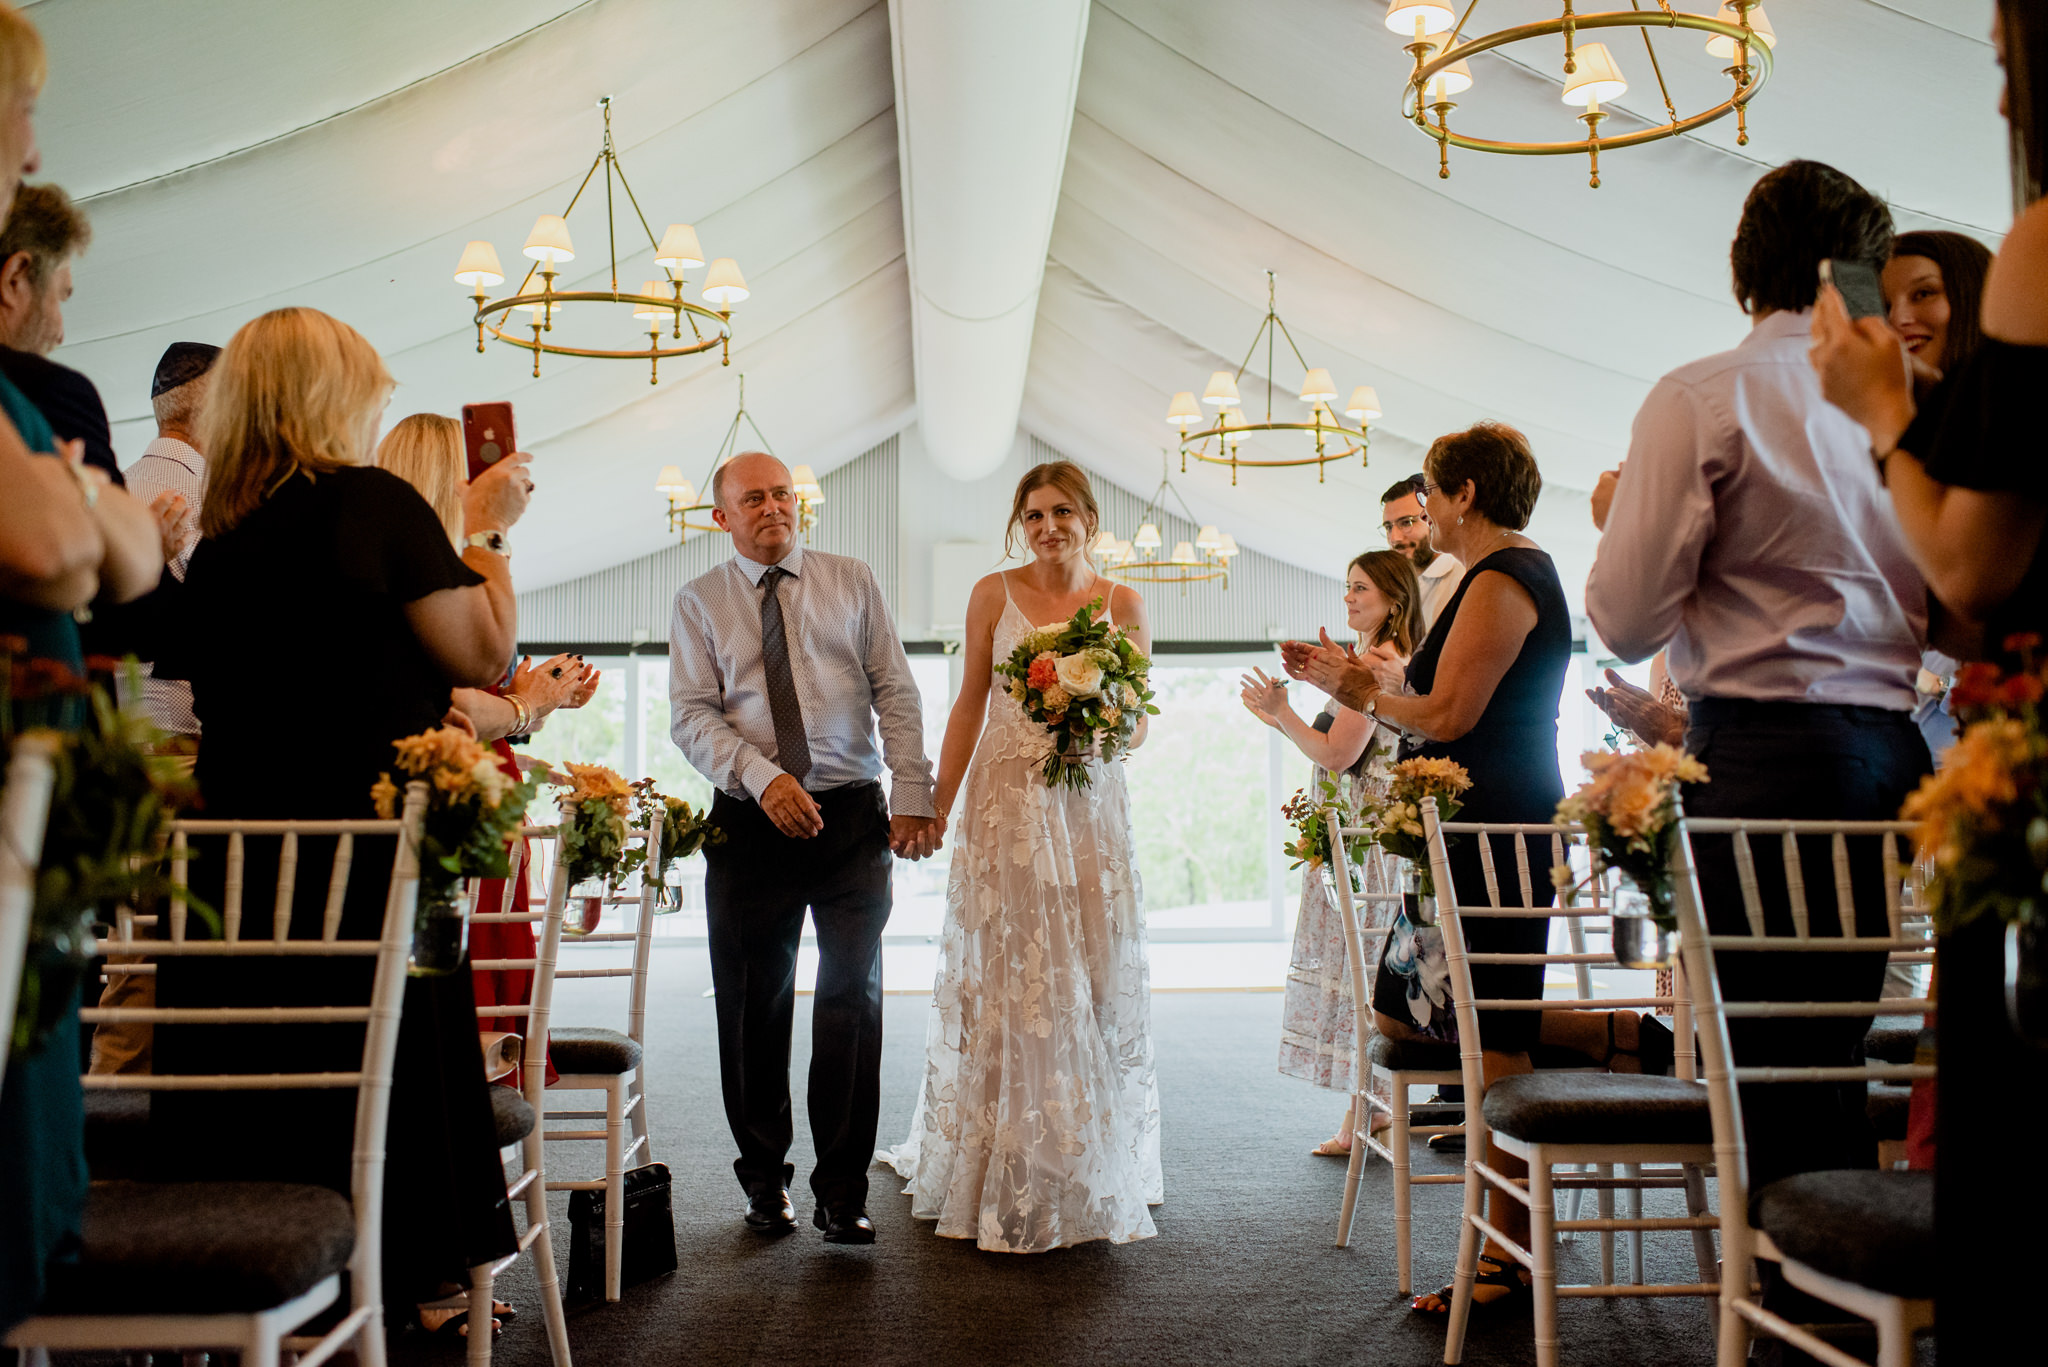 Bride and father walk down the aisle with guests applauding